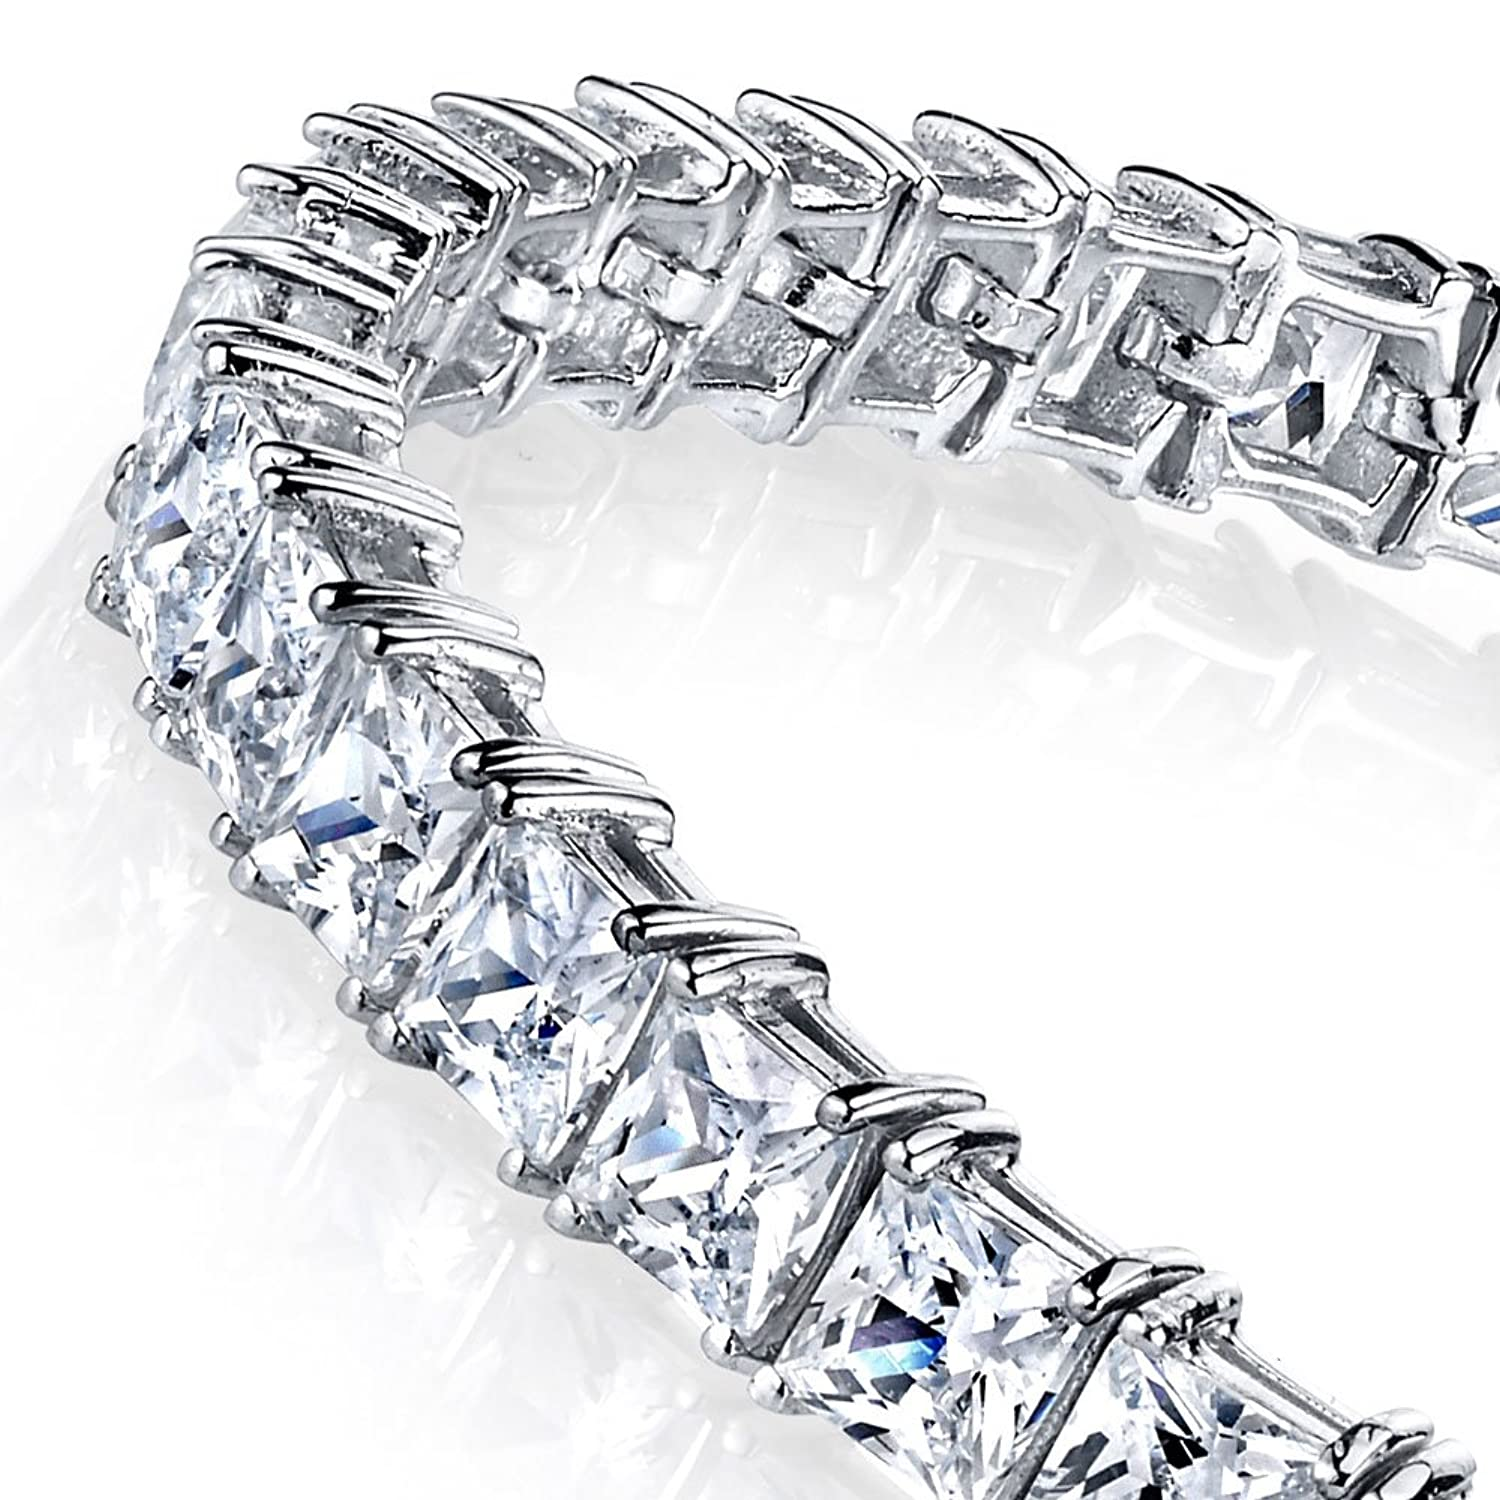 Sterling Silver 4mm Princess Cut Square Cubic Zirconia Diamond Bracelet 20 Carats of Total Weight CZ's